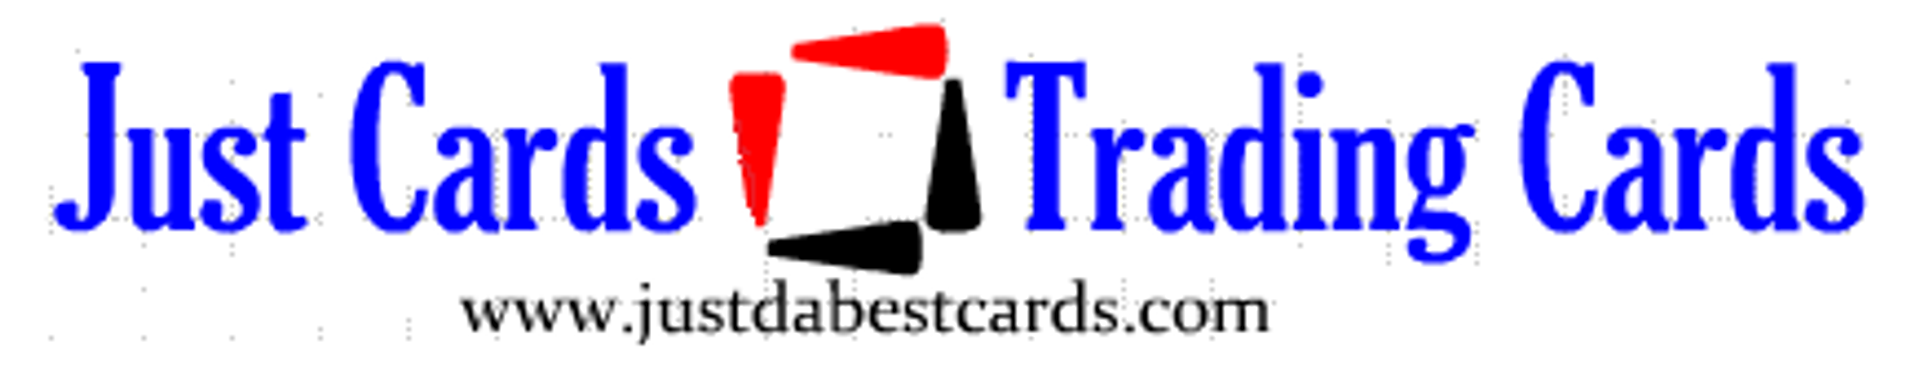 Just Cards Logo Banner